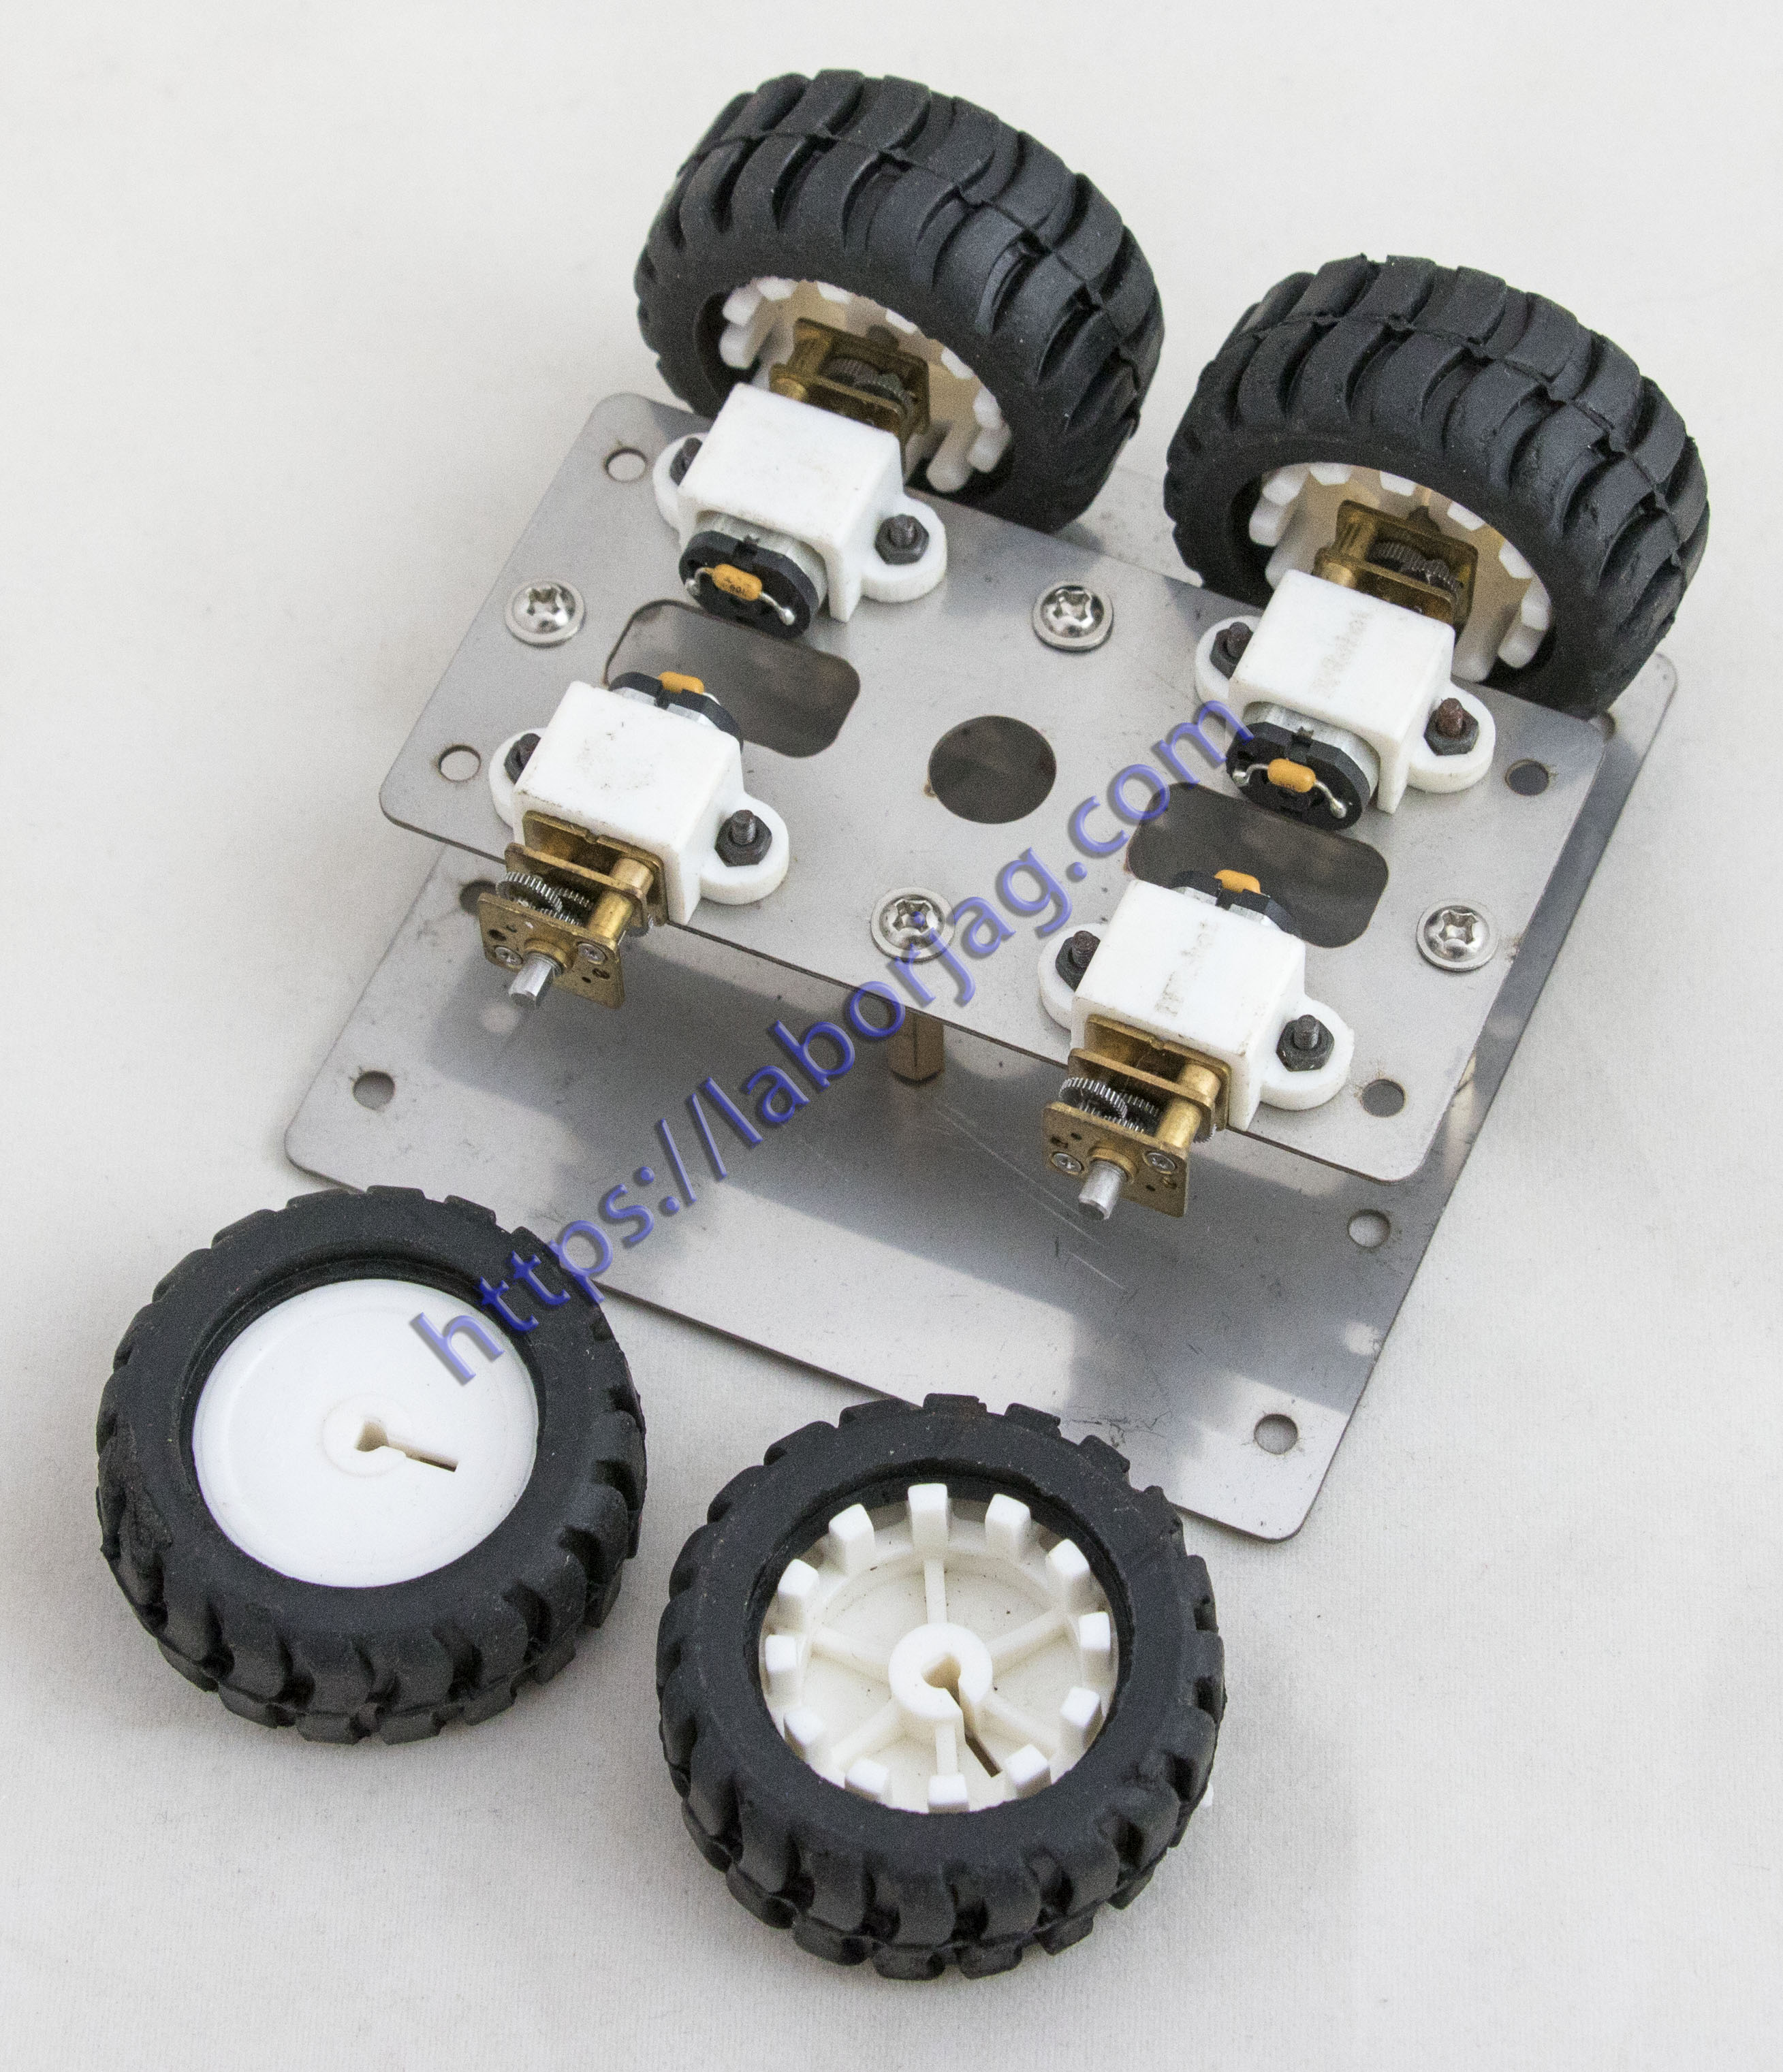 Smart Robot Car Metal Chassis 4WD N20 Gear Motor | Borja